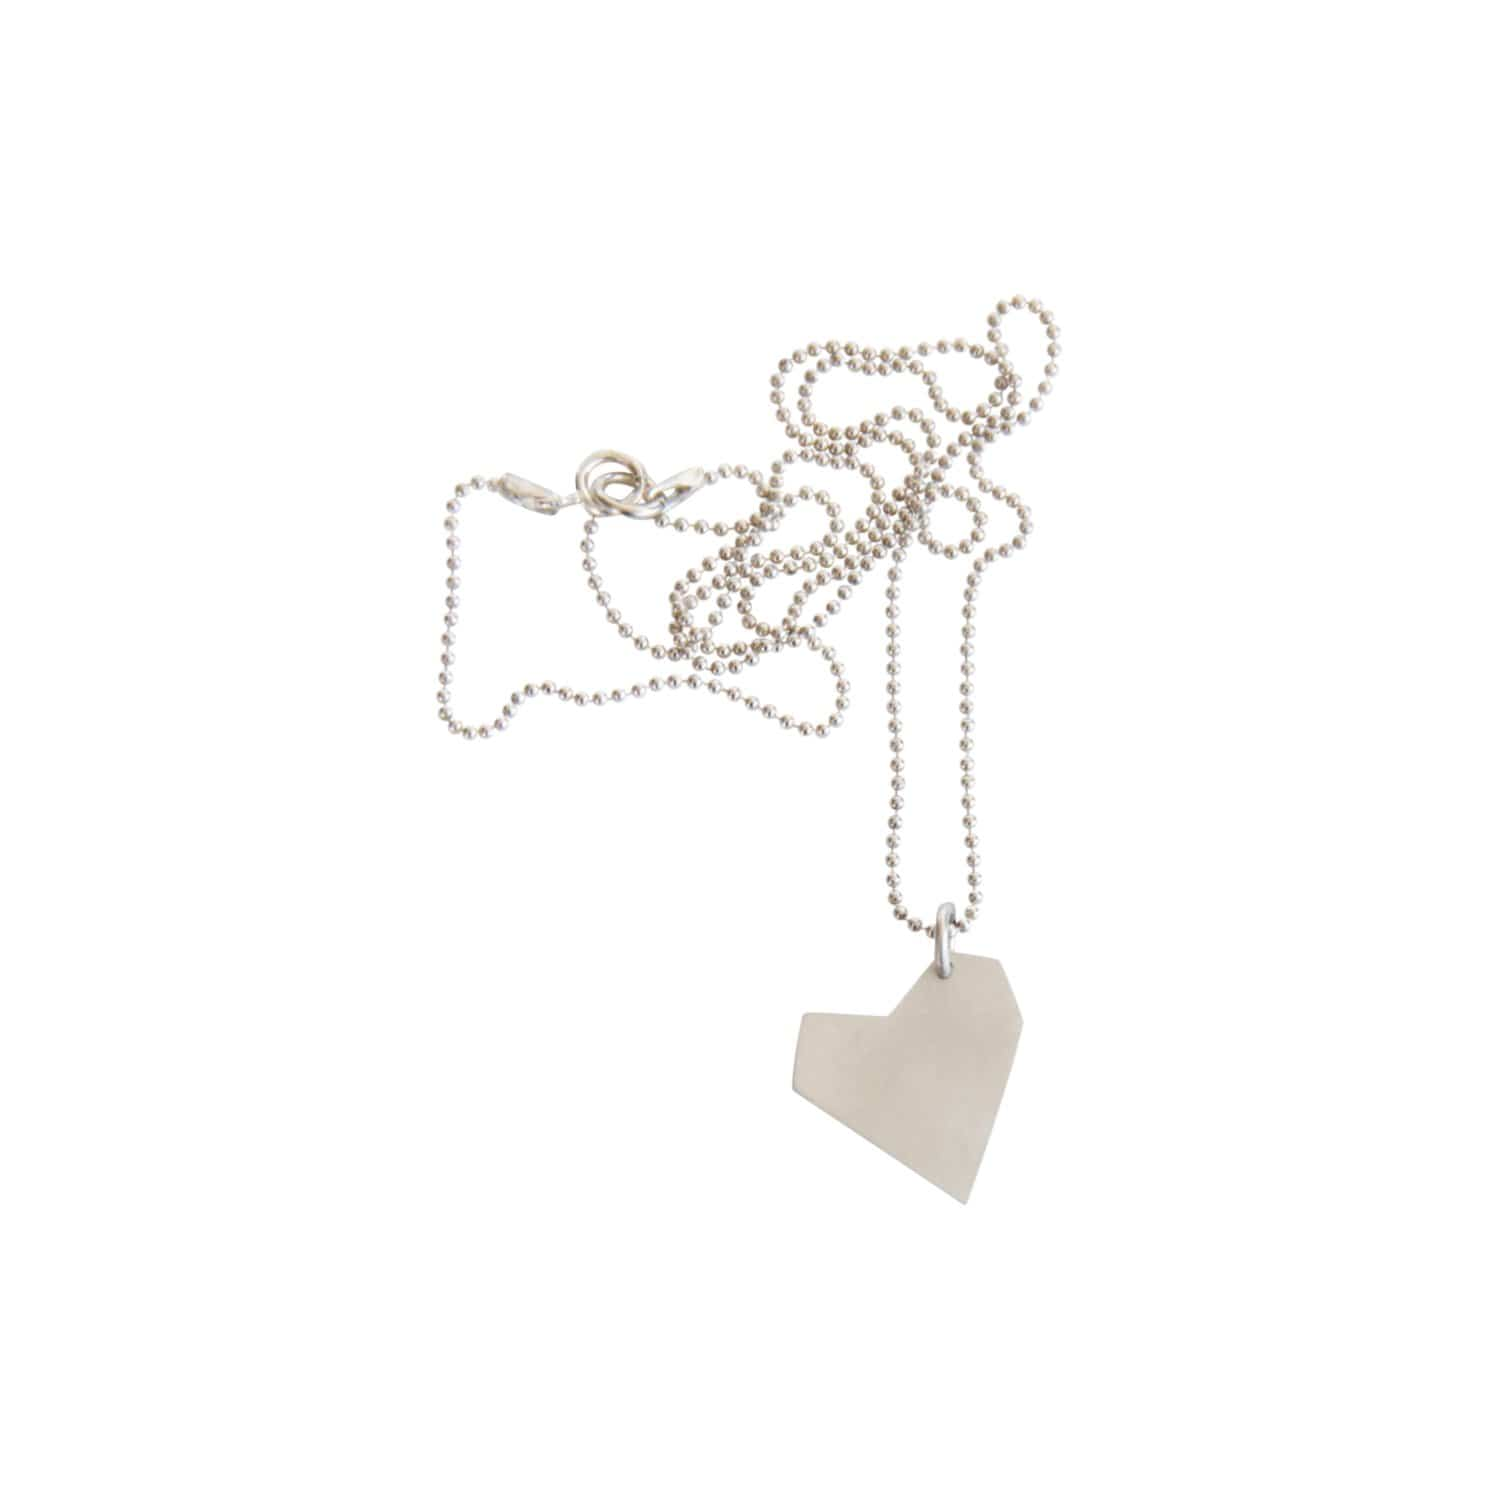 tothemetal jewelry Asymmetrical Heart Silver Necklace